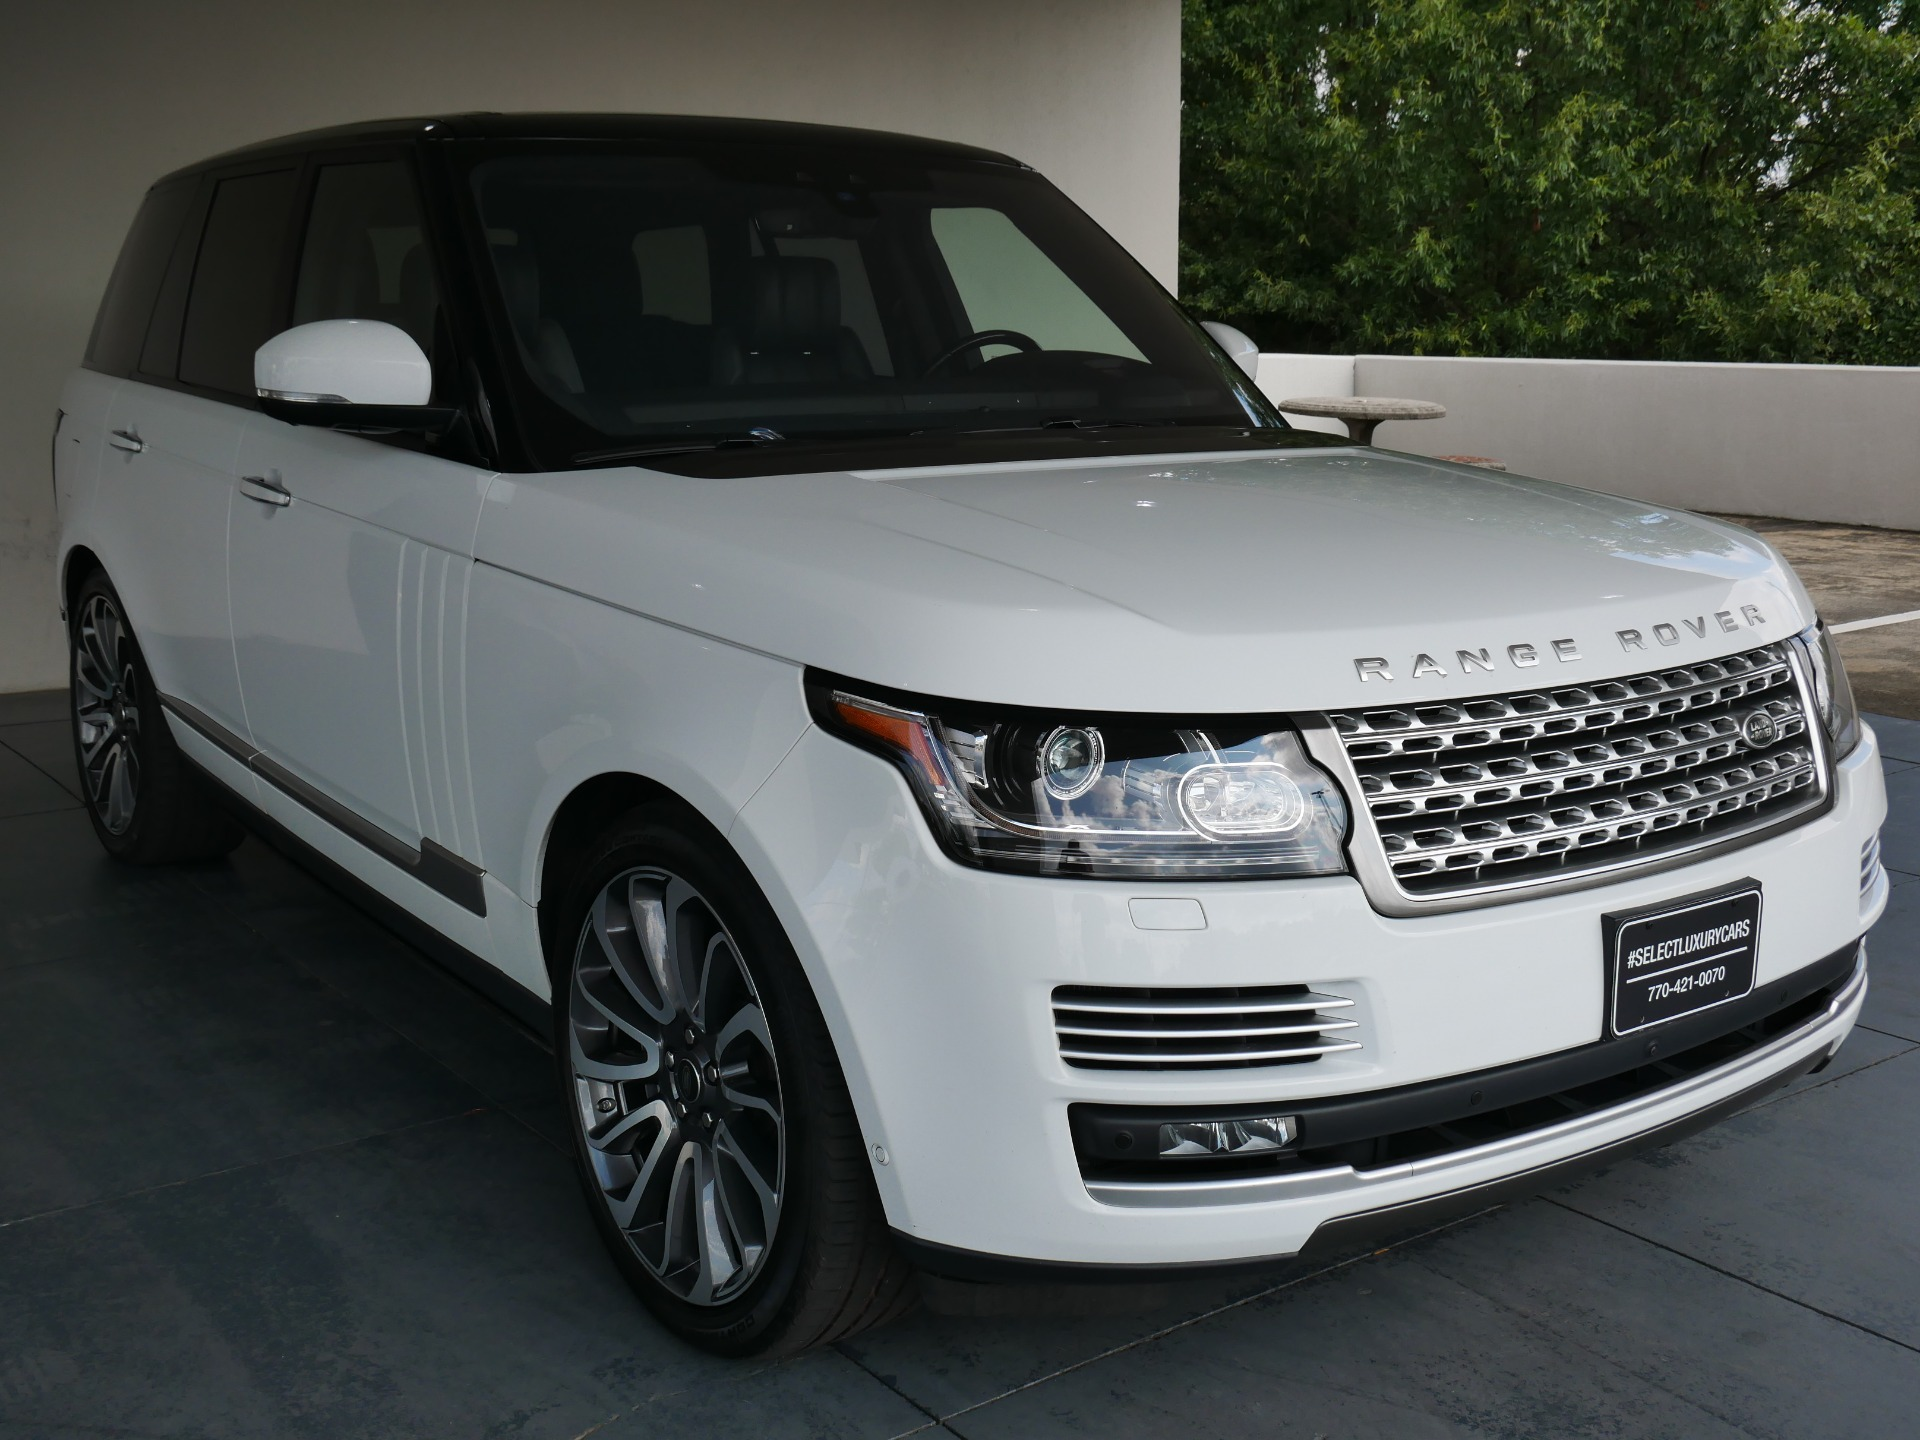 2017 Land Rover Range Rover 5.0L V8 Supercharged Autobiography